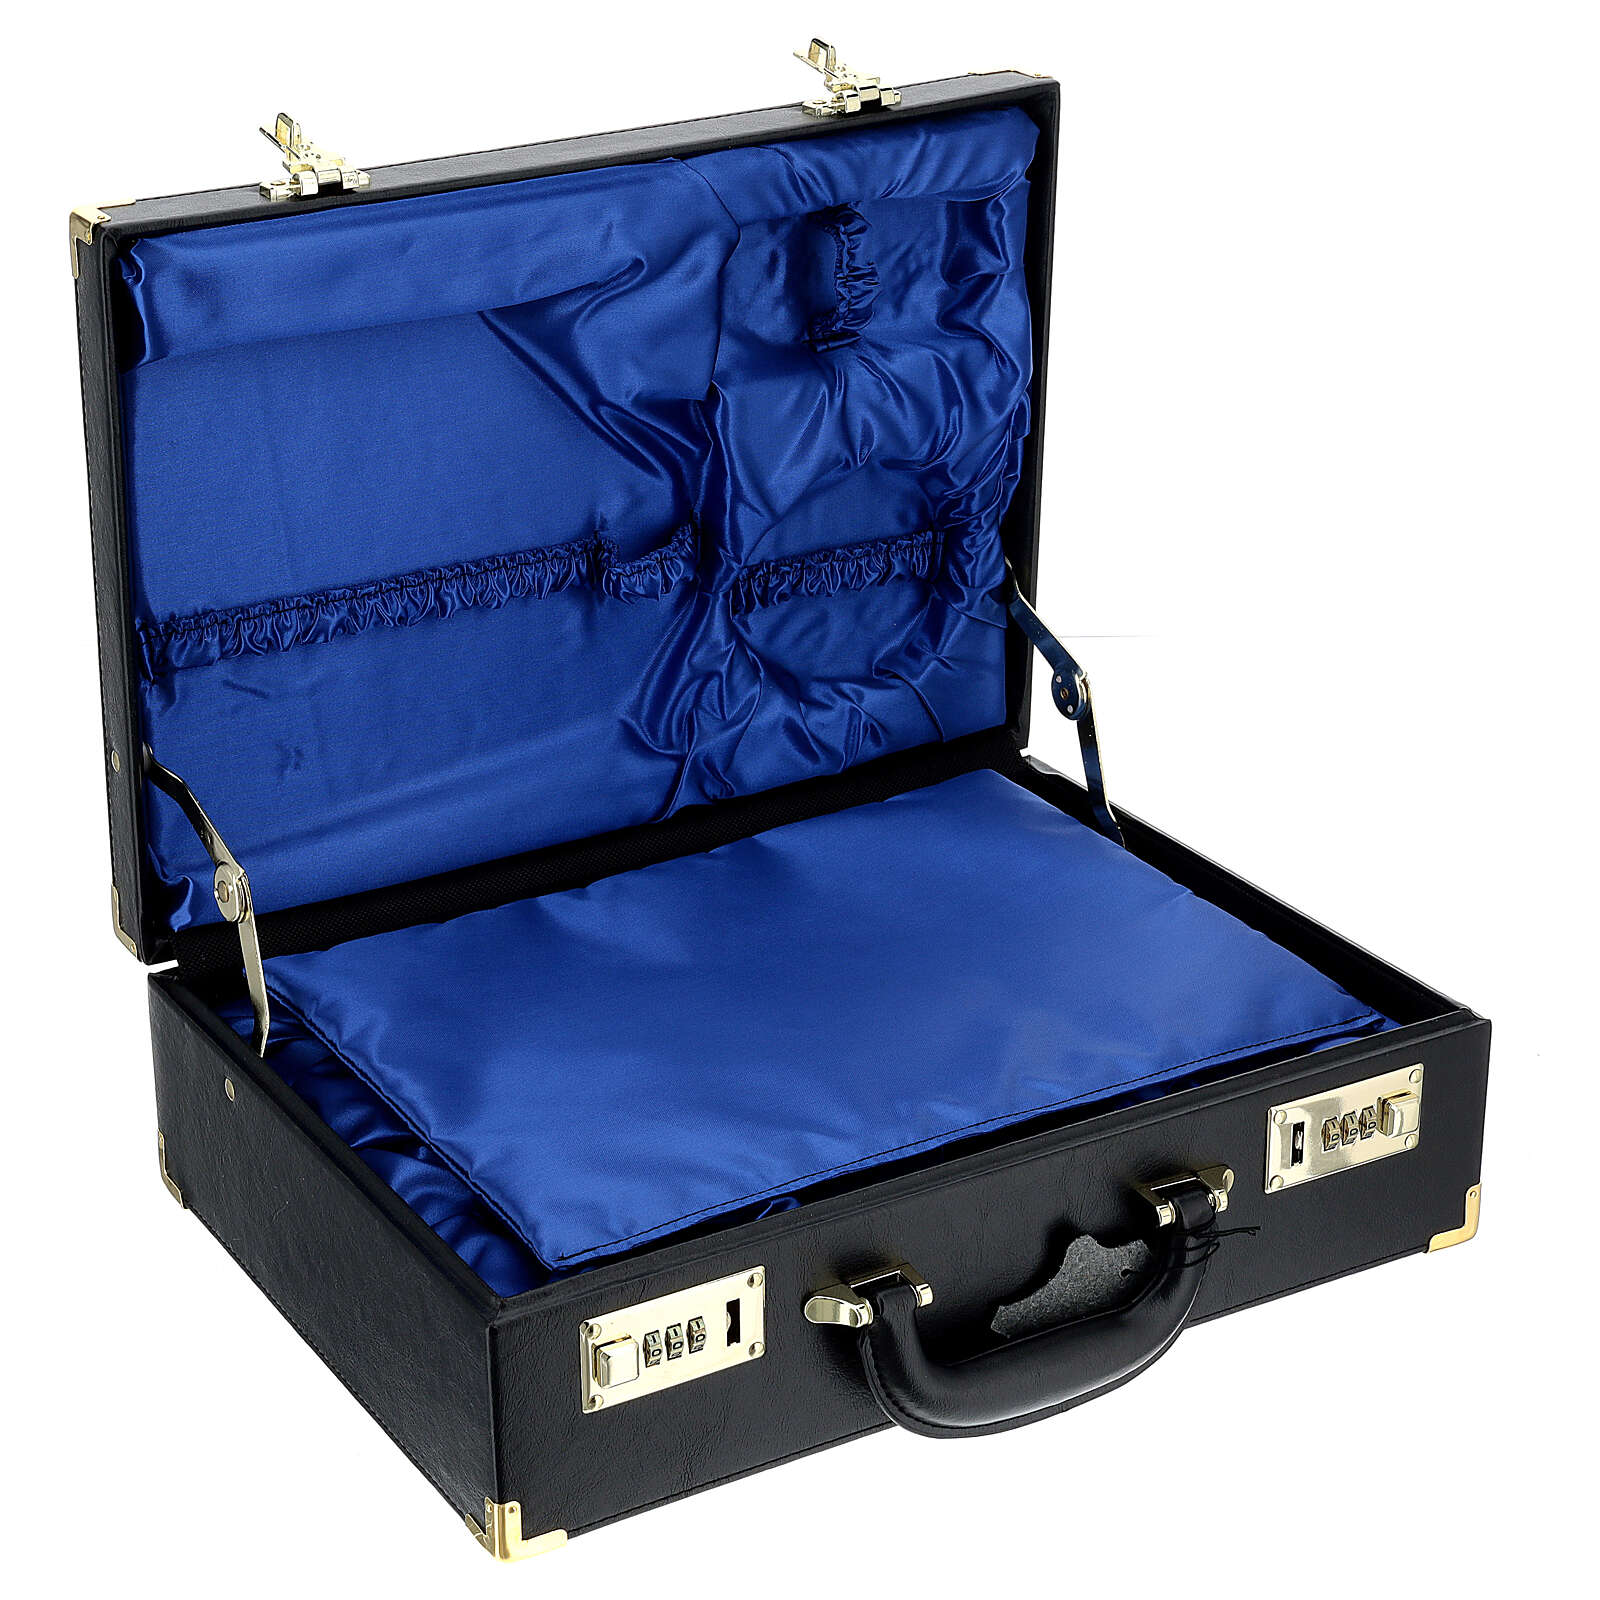 Case for travelling mass kits, empty with blue satin insides 3